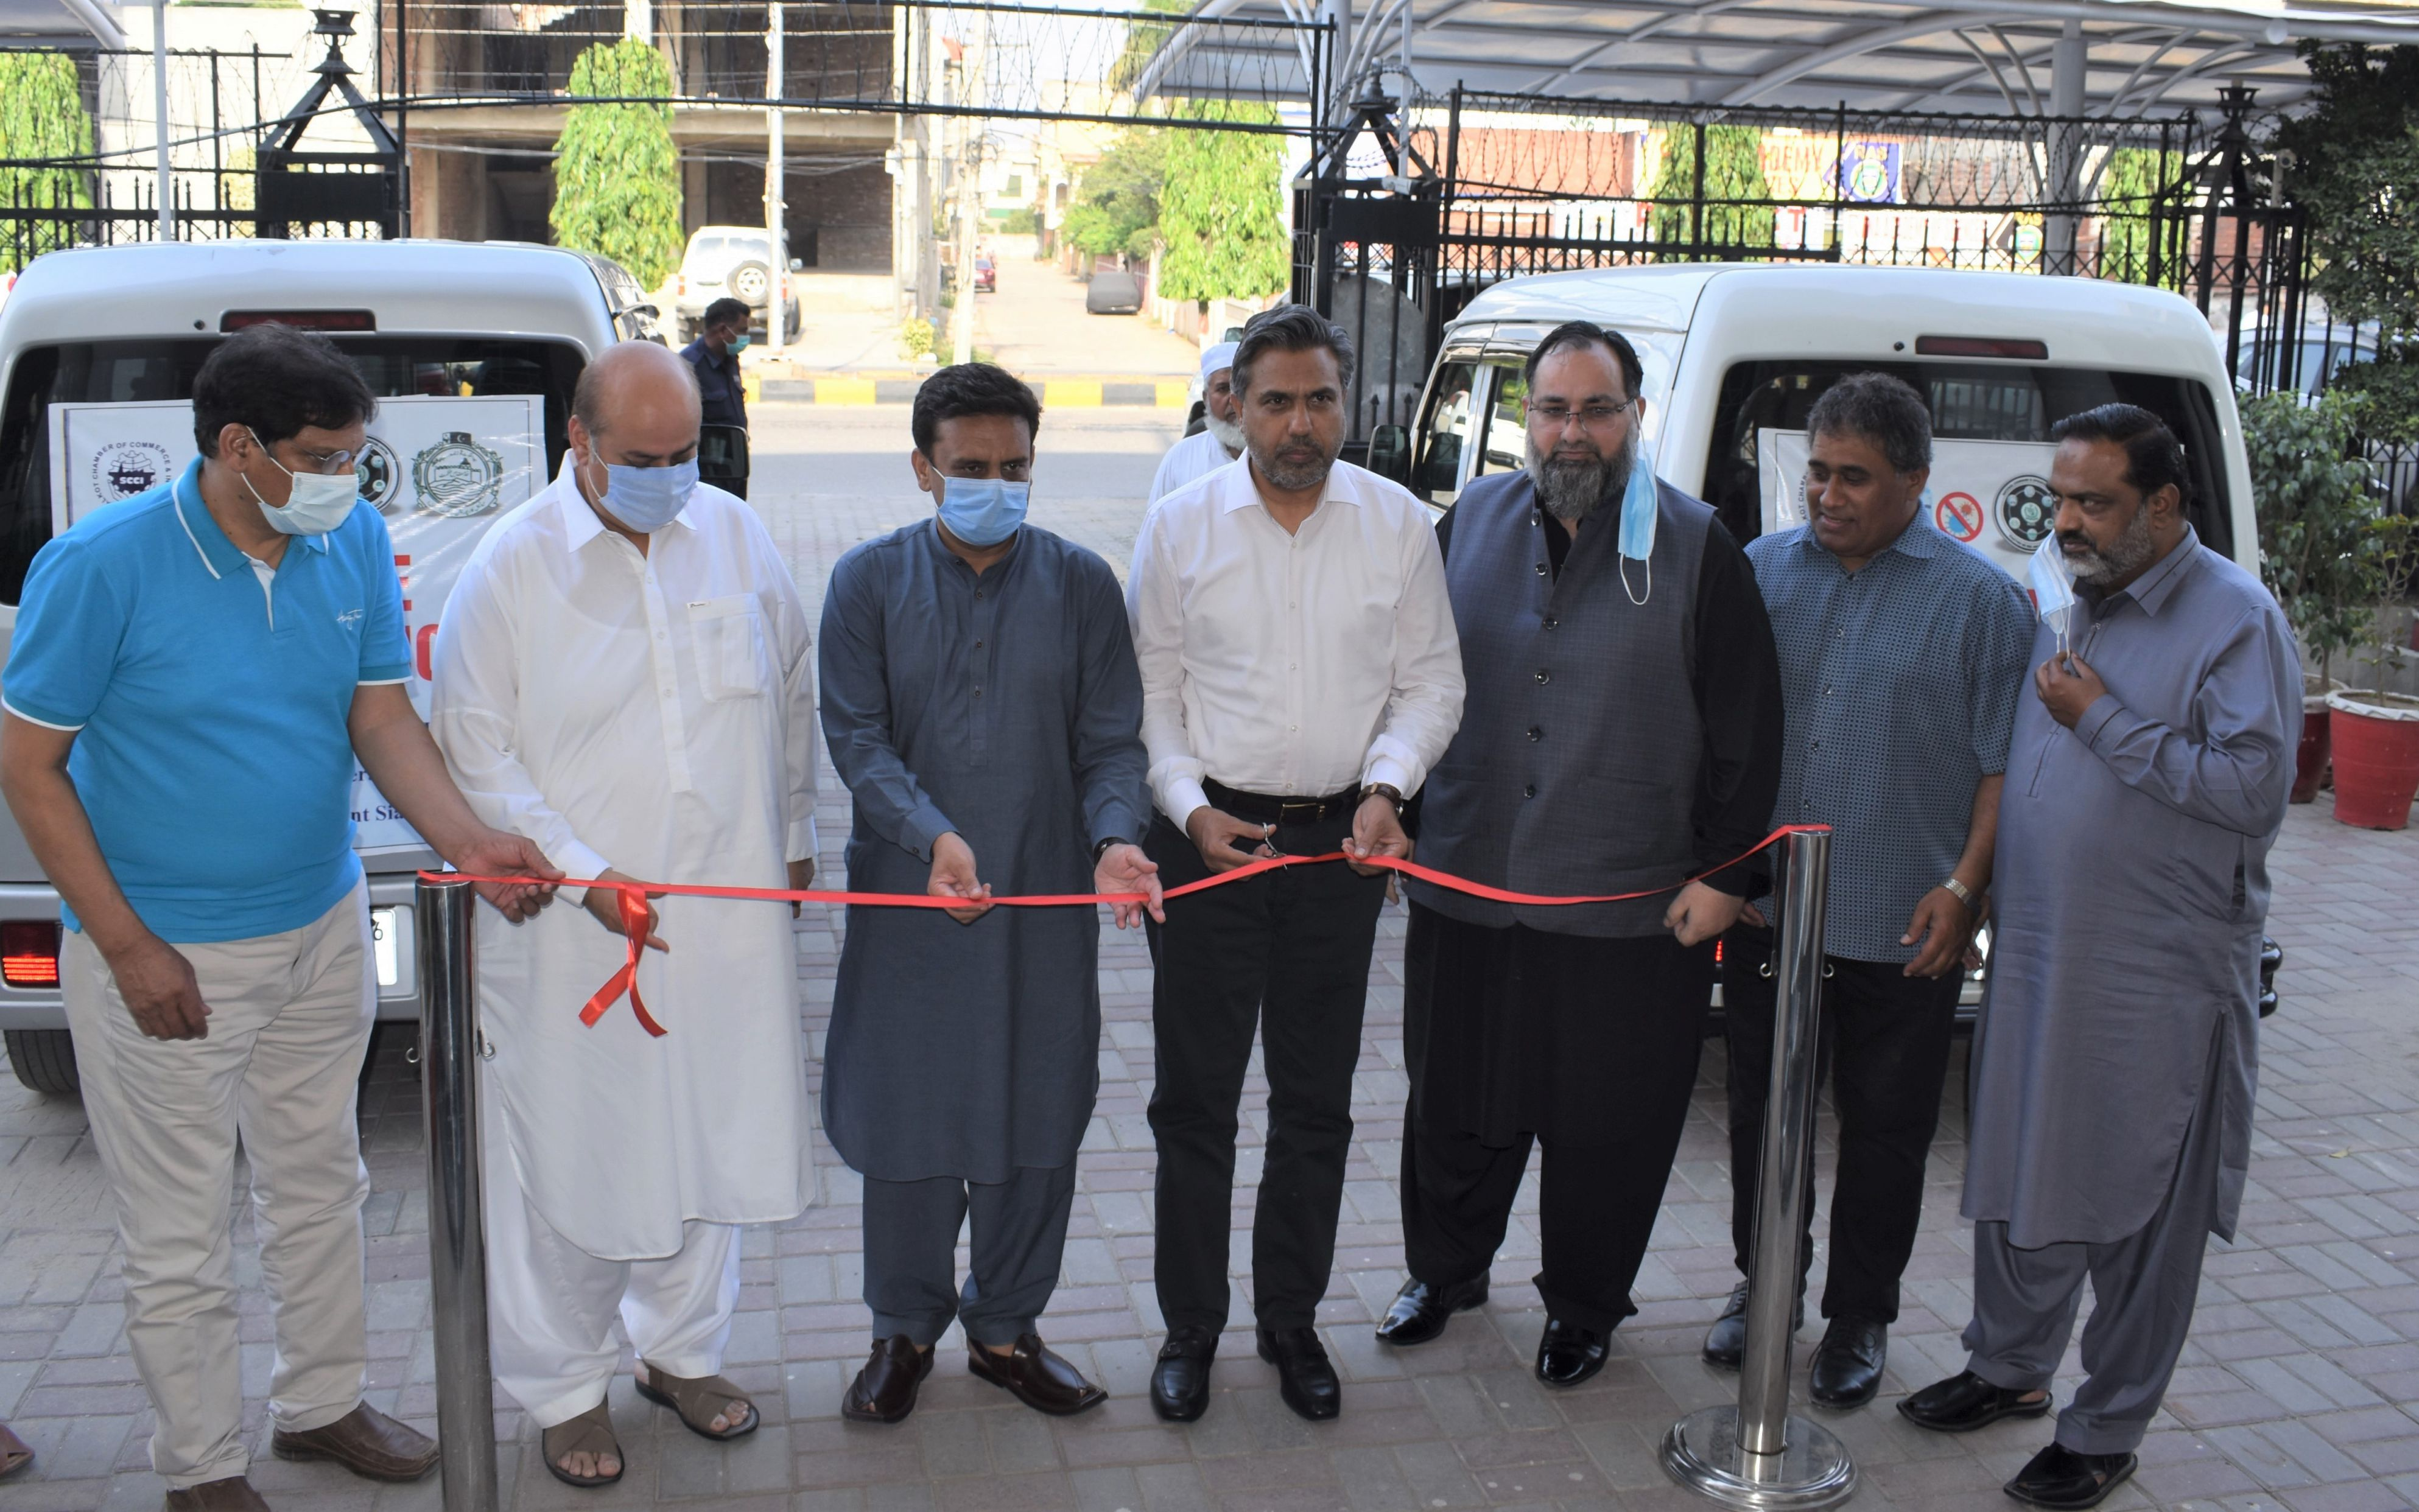 """On June 05, 2021, Mr. Qaisar Iqbal Baryar, President, SCCI and Mr. Khuram Aslam, Senior Vice President, SCCI inaugurated """"Mobile vaccination"""", A Joint project of SCCI and National Command Operation Center (NCOC) at Sialkot Chamber of Commerce & Industry. Deputy Commissioner Sialkot Mr. Tahir Farooq also graced the ceremony. This joint project of SCCI and NCOC will accelerate the campaign of vaccination and support the ongoing national efforts to overcome the spread of the COVID-19 in Sialkot city."""